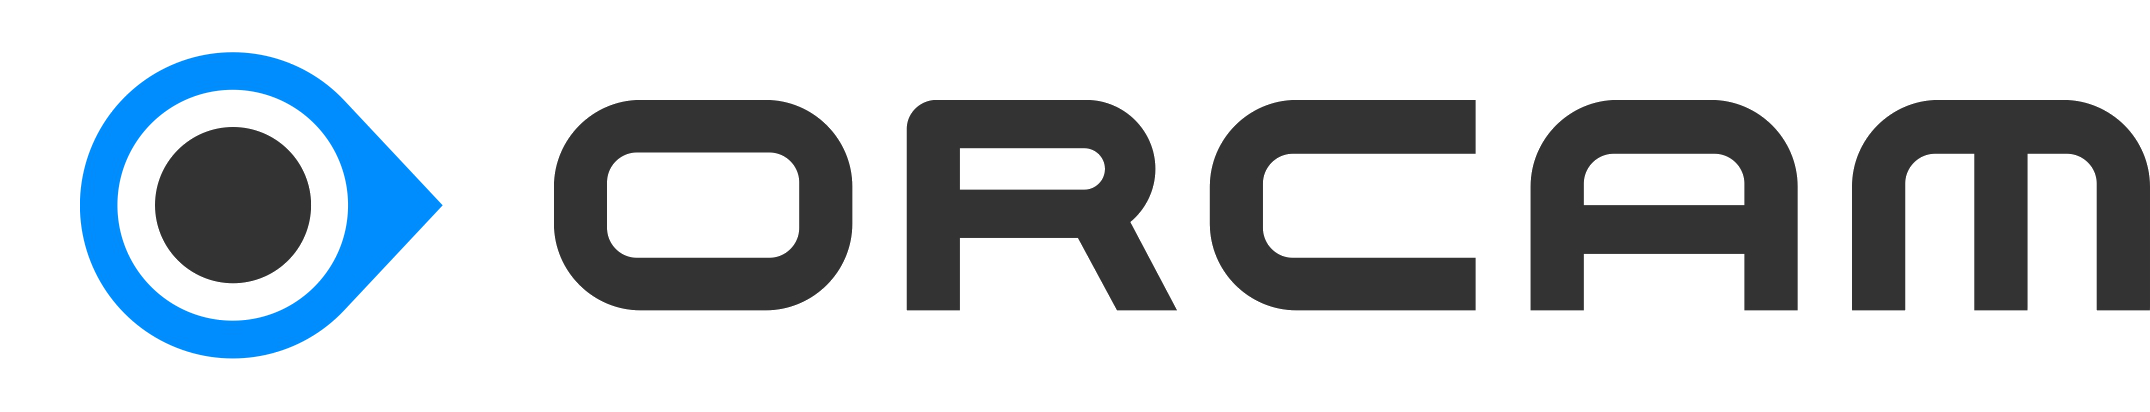 ORCAM-LOGO-Clear-Back-small-1-1.png